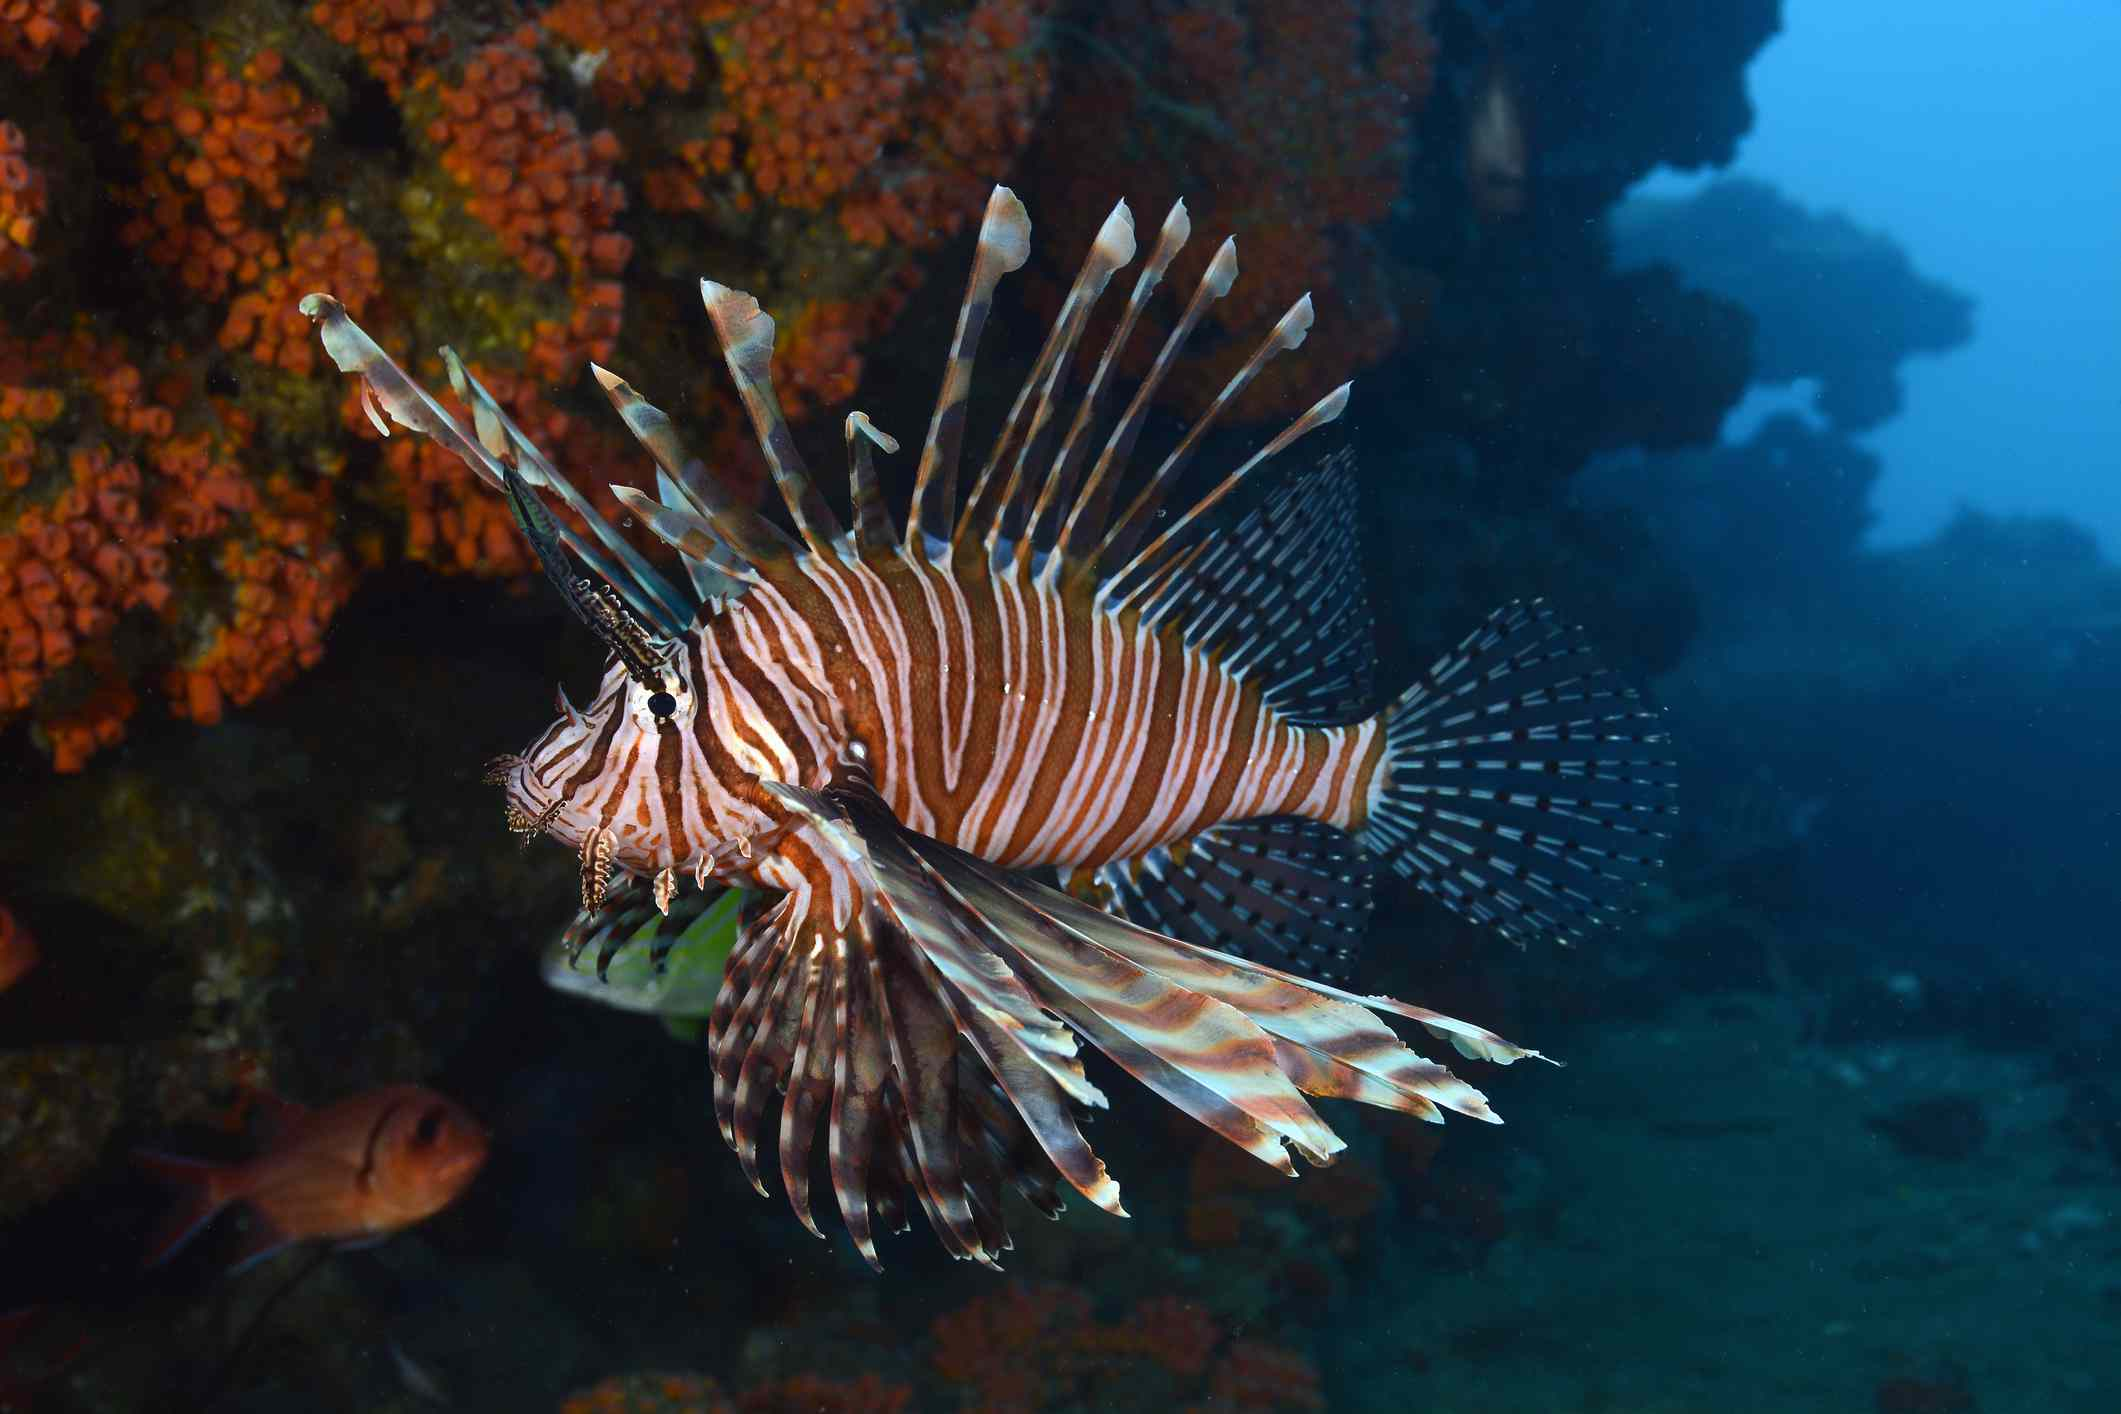 A bright orange and white lionfish next to a large orange coral reef